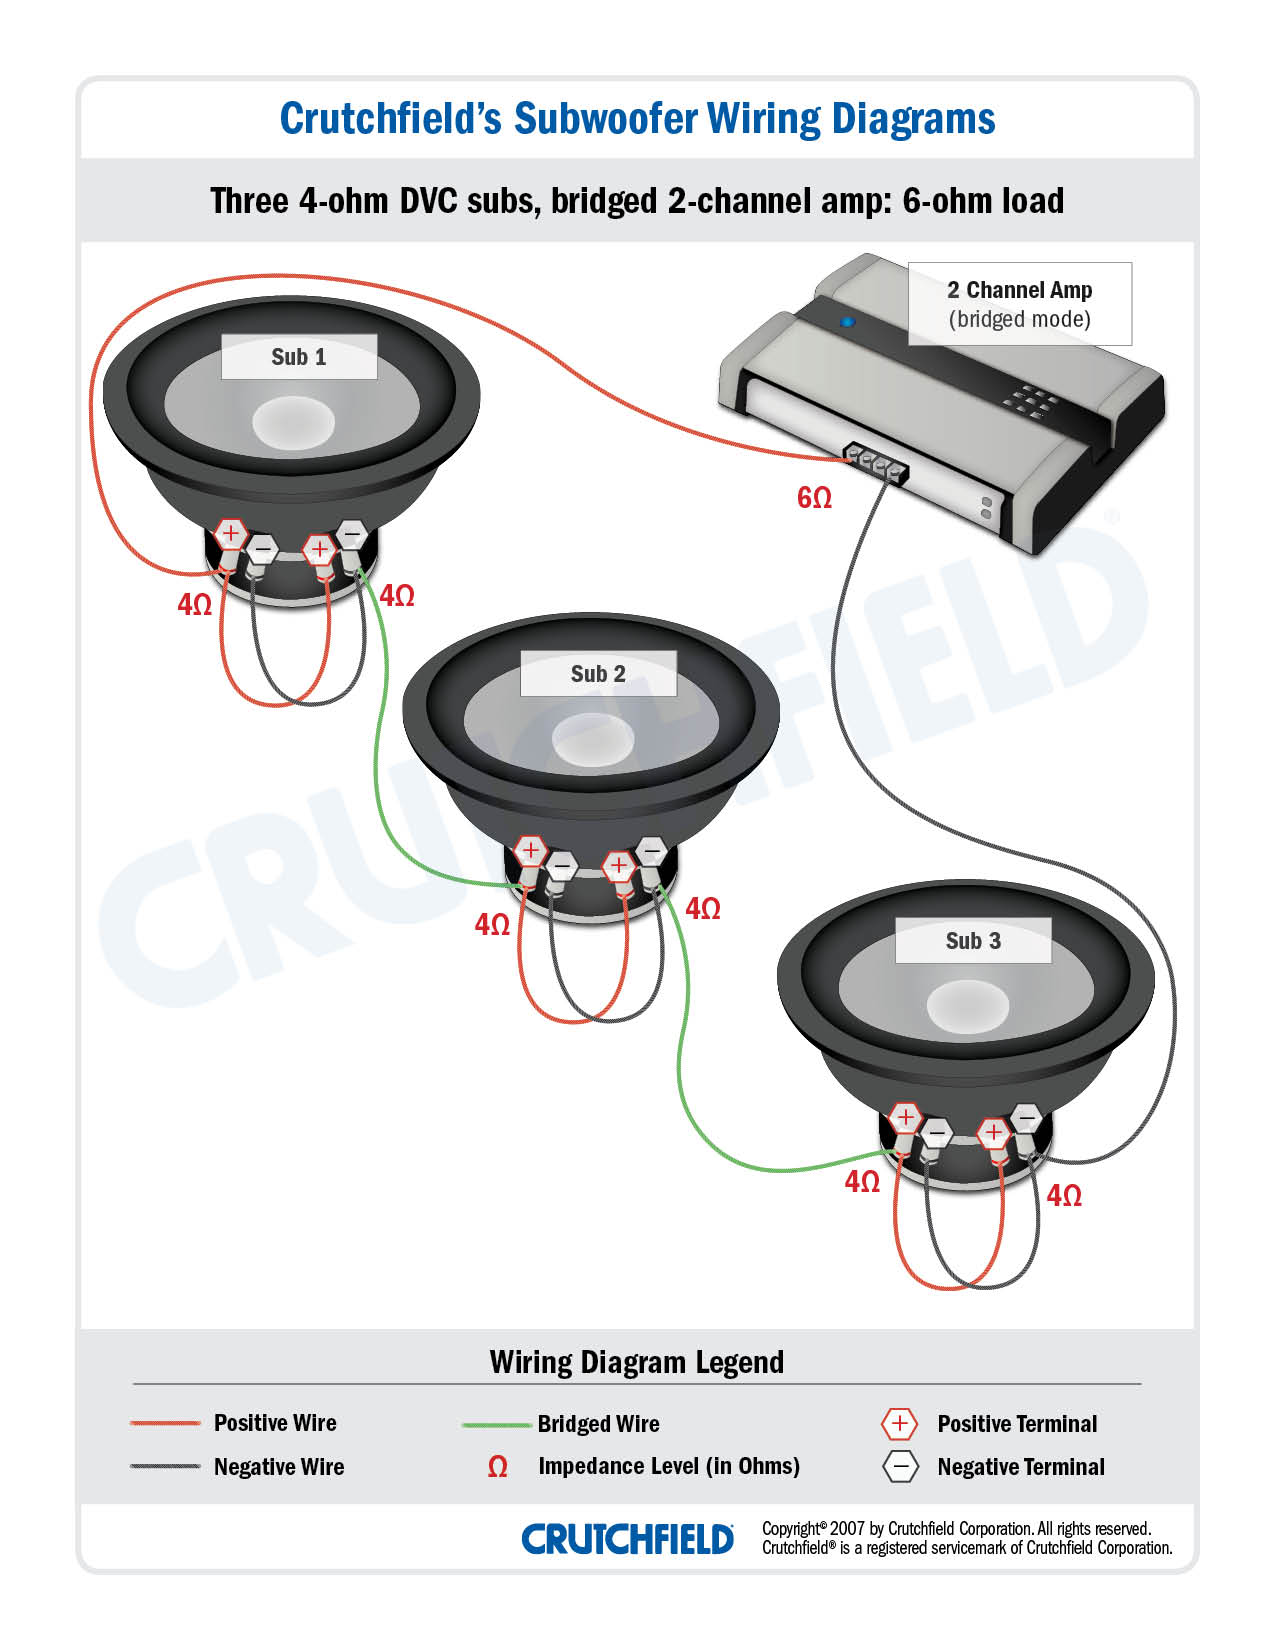 3 DVC 4 ohm 2 ch subwoofer wiring diagrams dual 4 ohm voice coil wiring diagram at bakdesigns.co